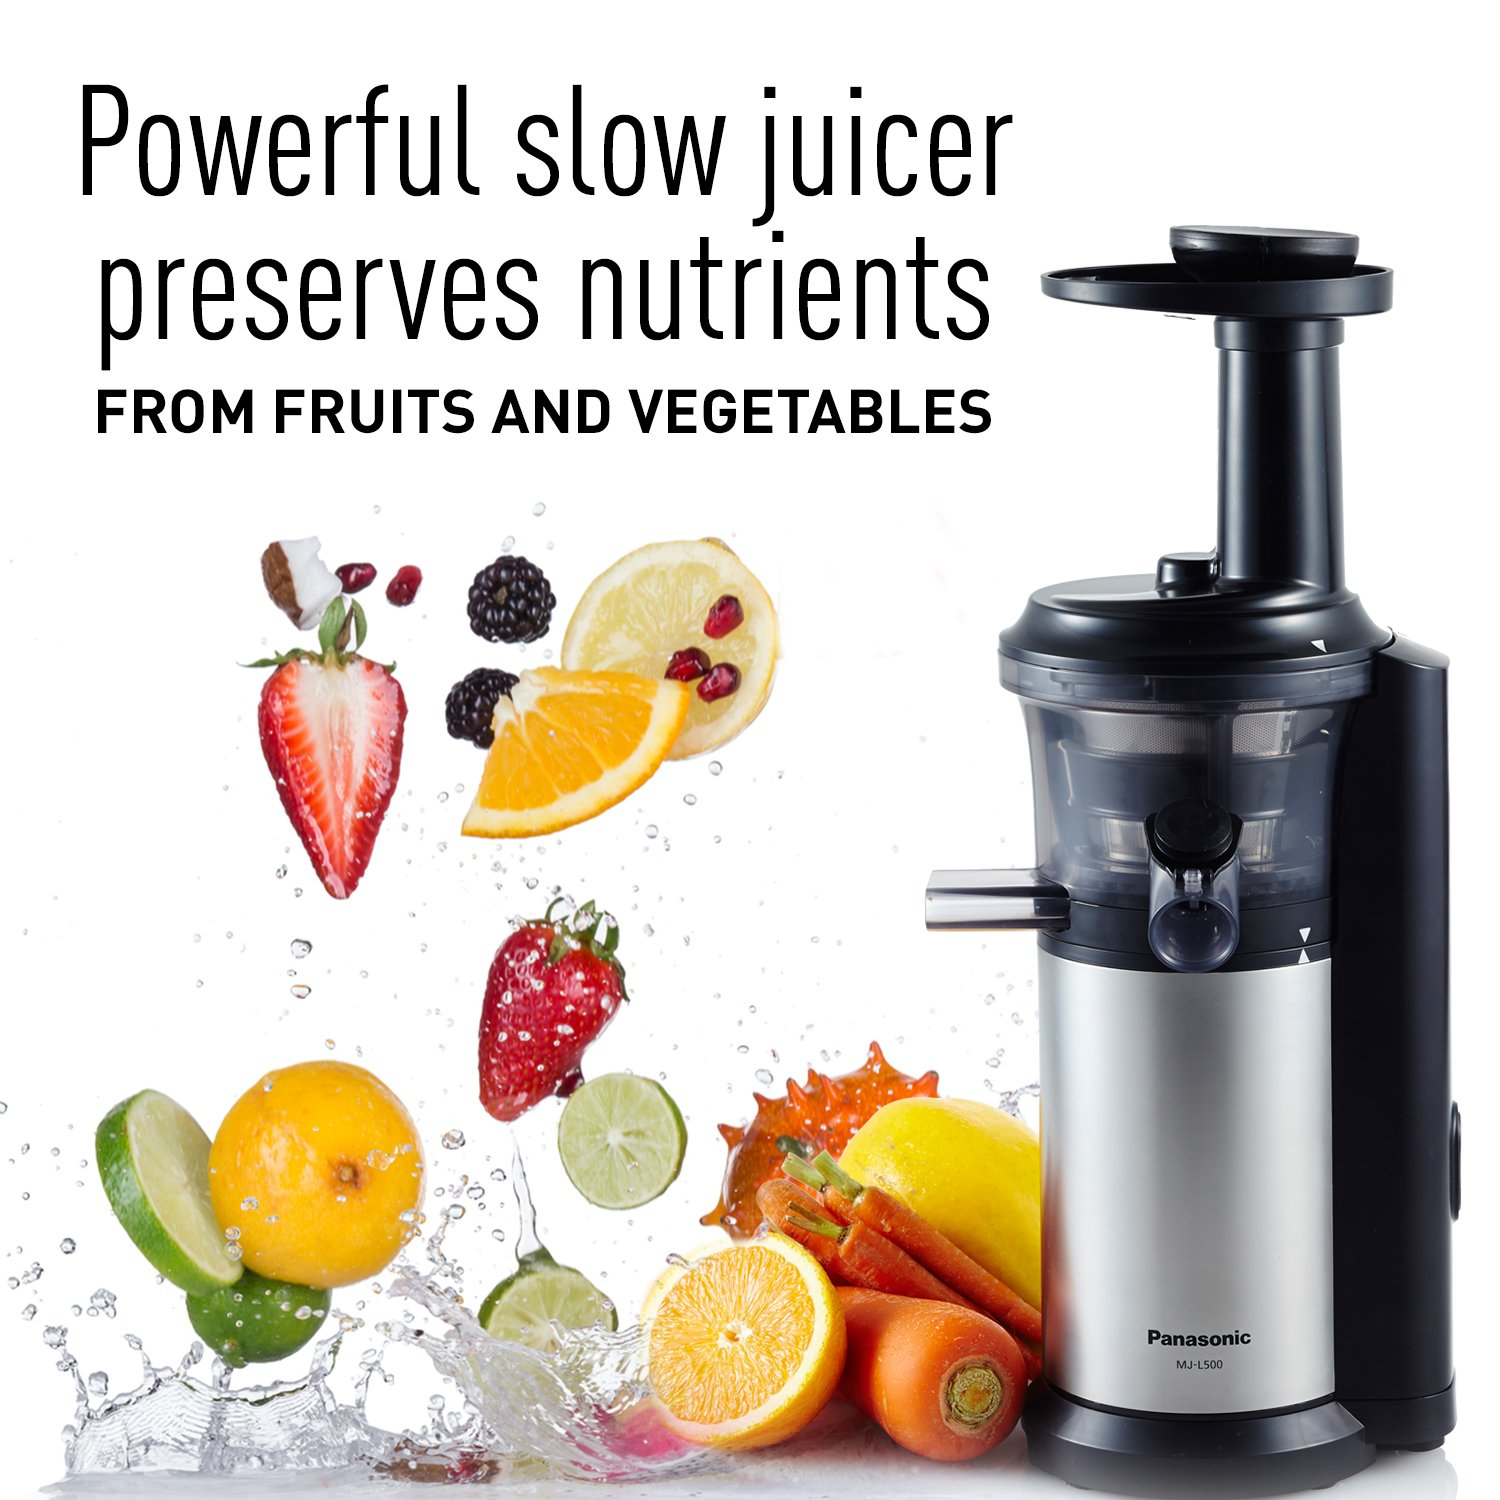 Panasonic Slow Juicer Vs Hurom Slow Juicer : Slow Juicer Reviews. Hurom Slow Juicer. Juices. . Kuvings Nje3580u Masticating Slow Juicer ...